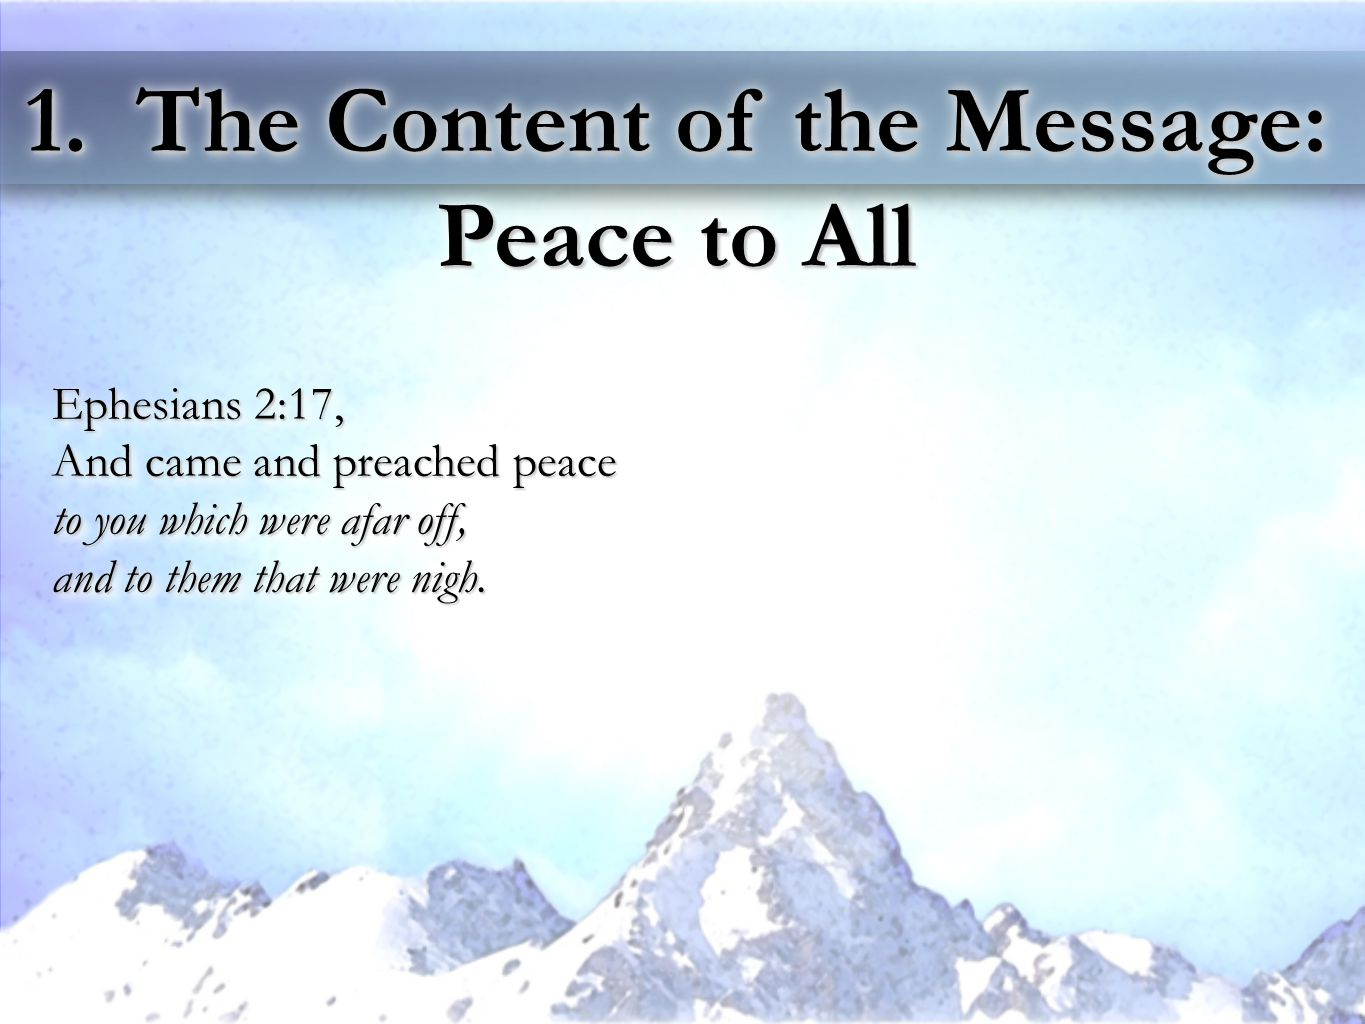 1. The Content of the Message: Peace to All Ephesians 2:17, And came and preached peace to you which were afar off, and to them that were nigh. Ephesi